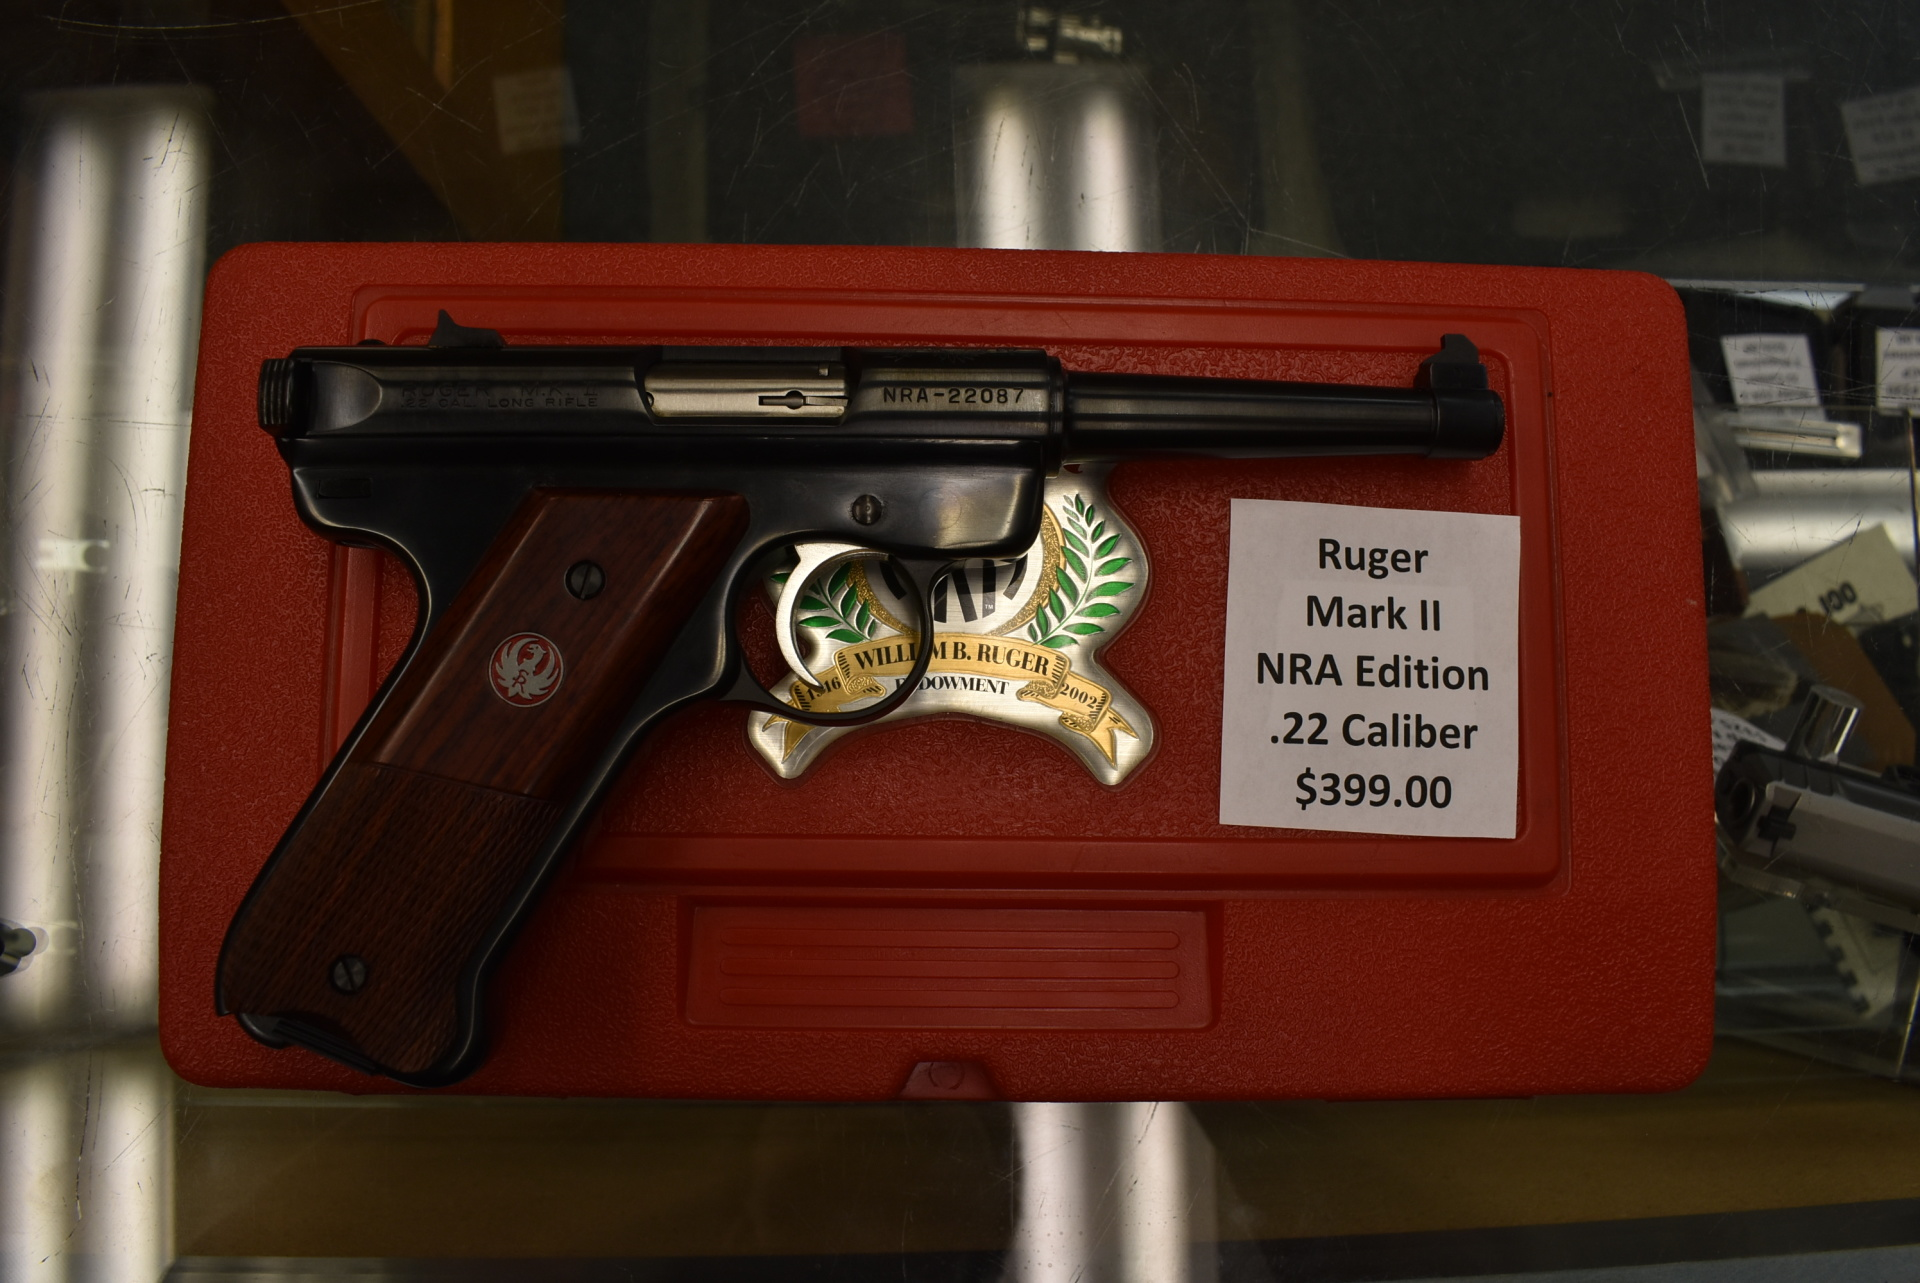 Ruger Mark II NRA Edition